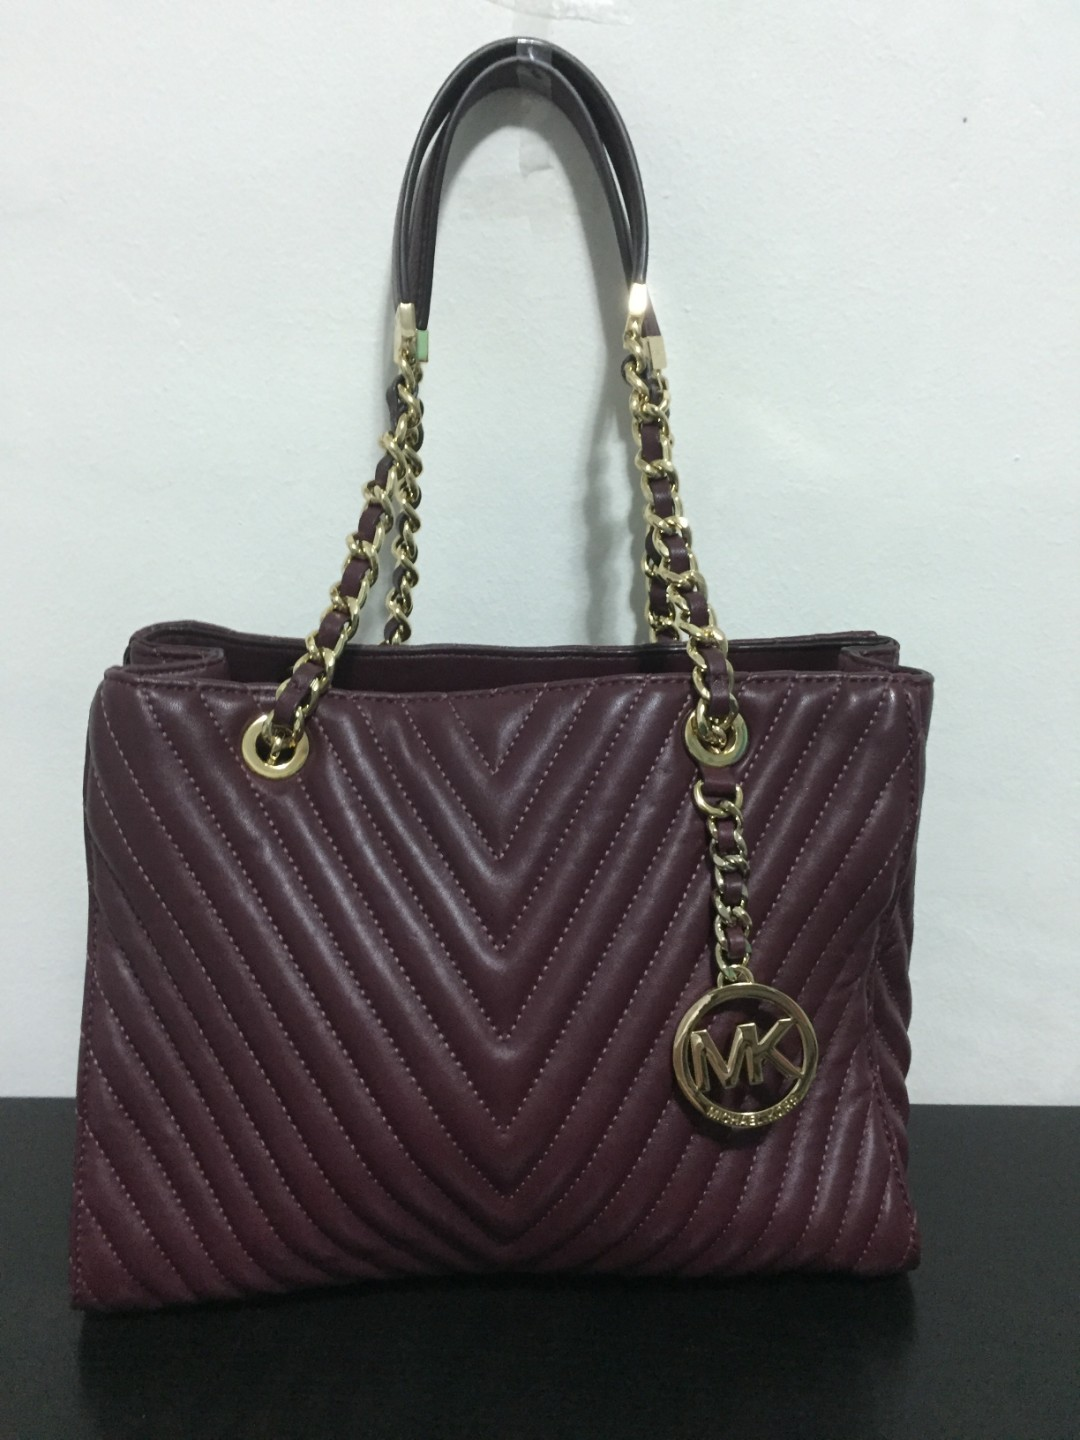 2b7b2e86c7b0 Michael Kors 2nd hand bag